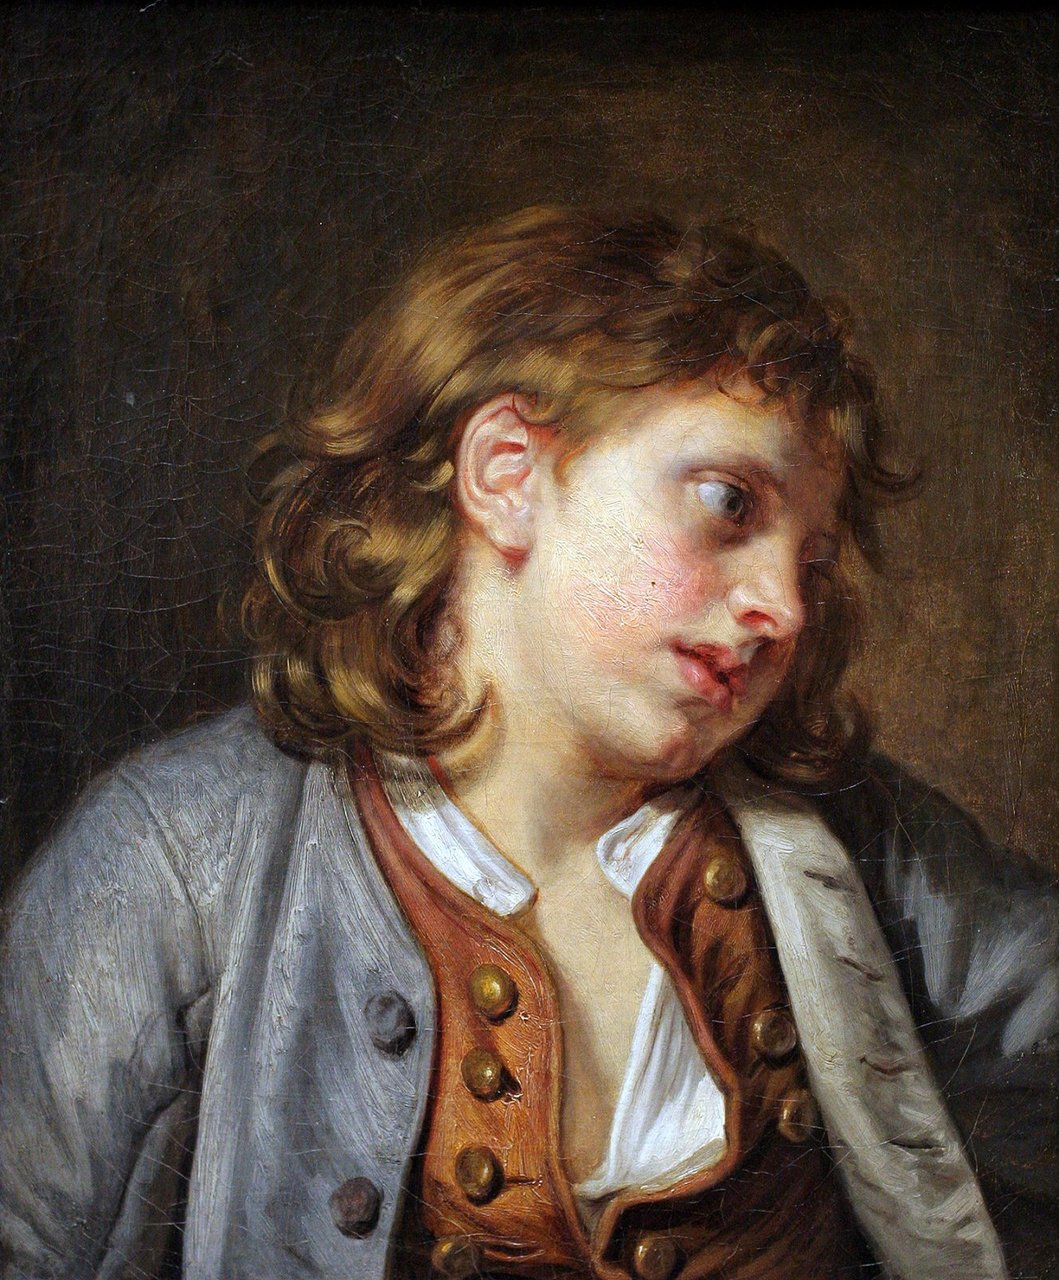 Jean-Baptiste Greuze A Young Peasant Boy, ca.1763 oil on canvas 18 7/8 x 15 3/8 inches (47.9 x 39.1 cm) Metropolitan Museum of Art, New York City